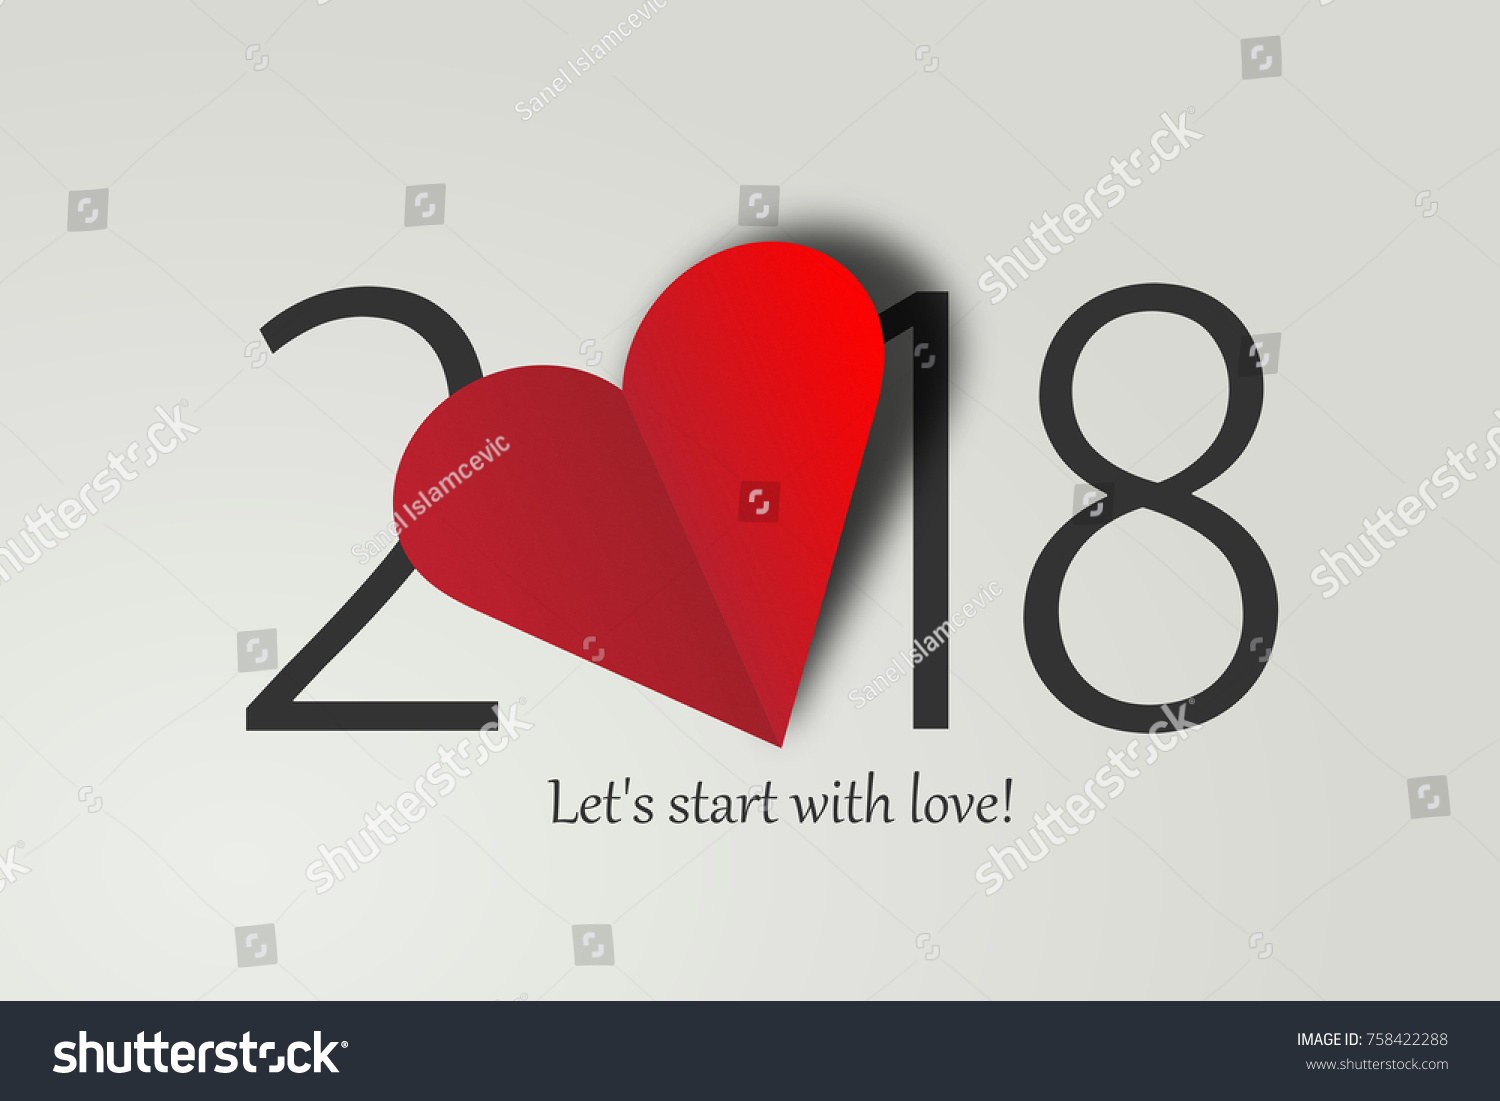 happy new year 2018 lets start with love